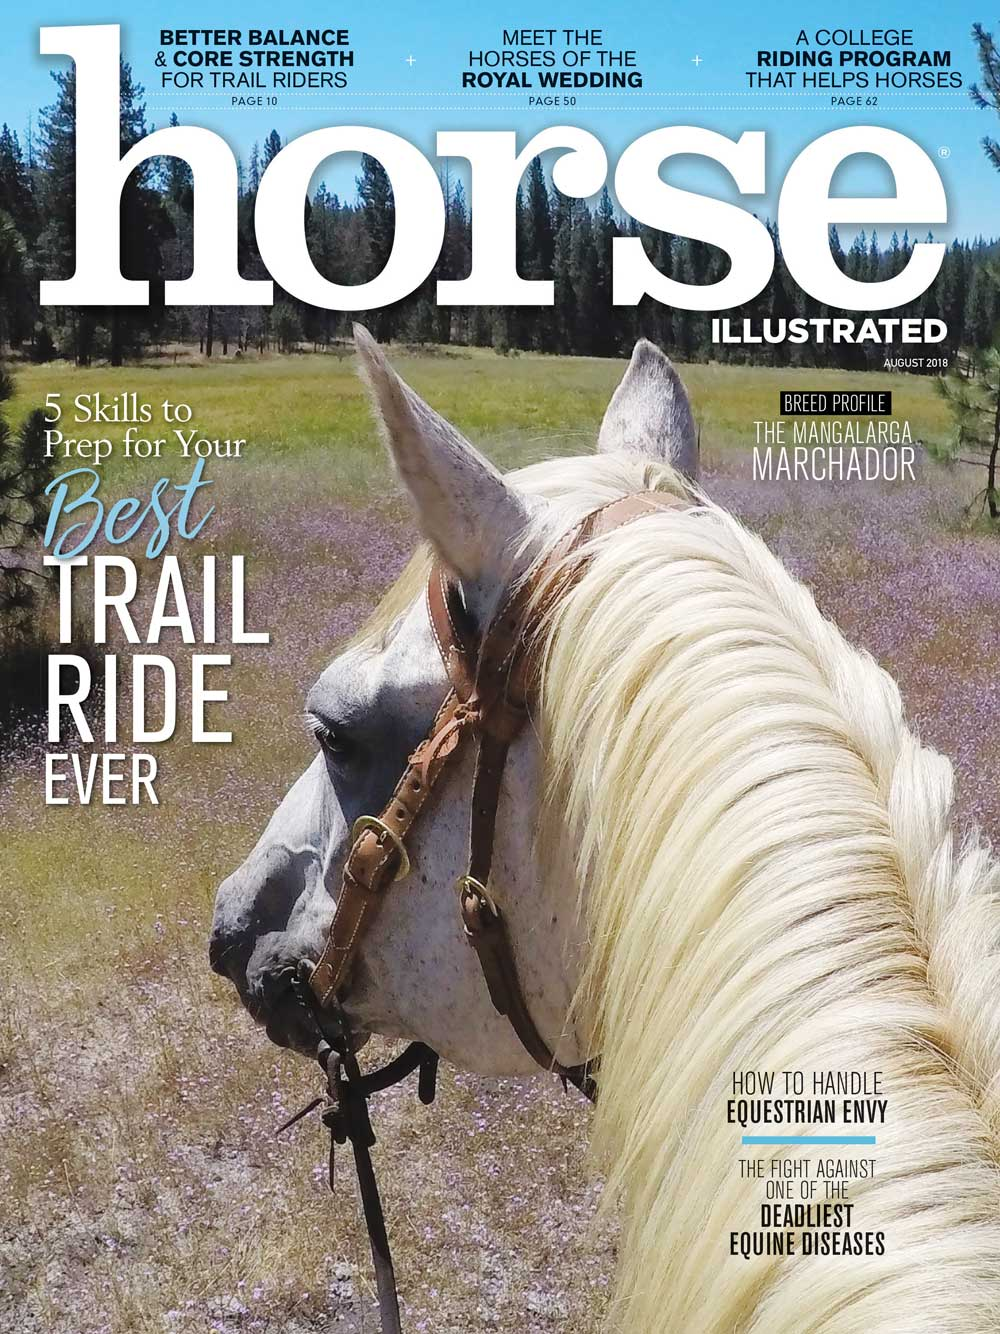 August 2018 Horse Illustrated magazine cover